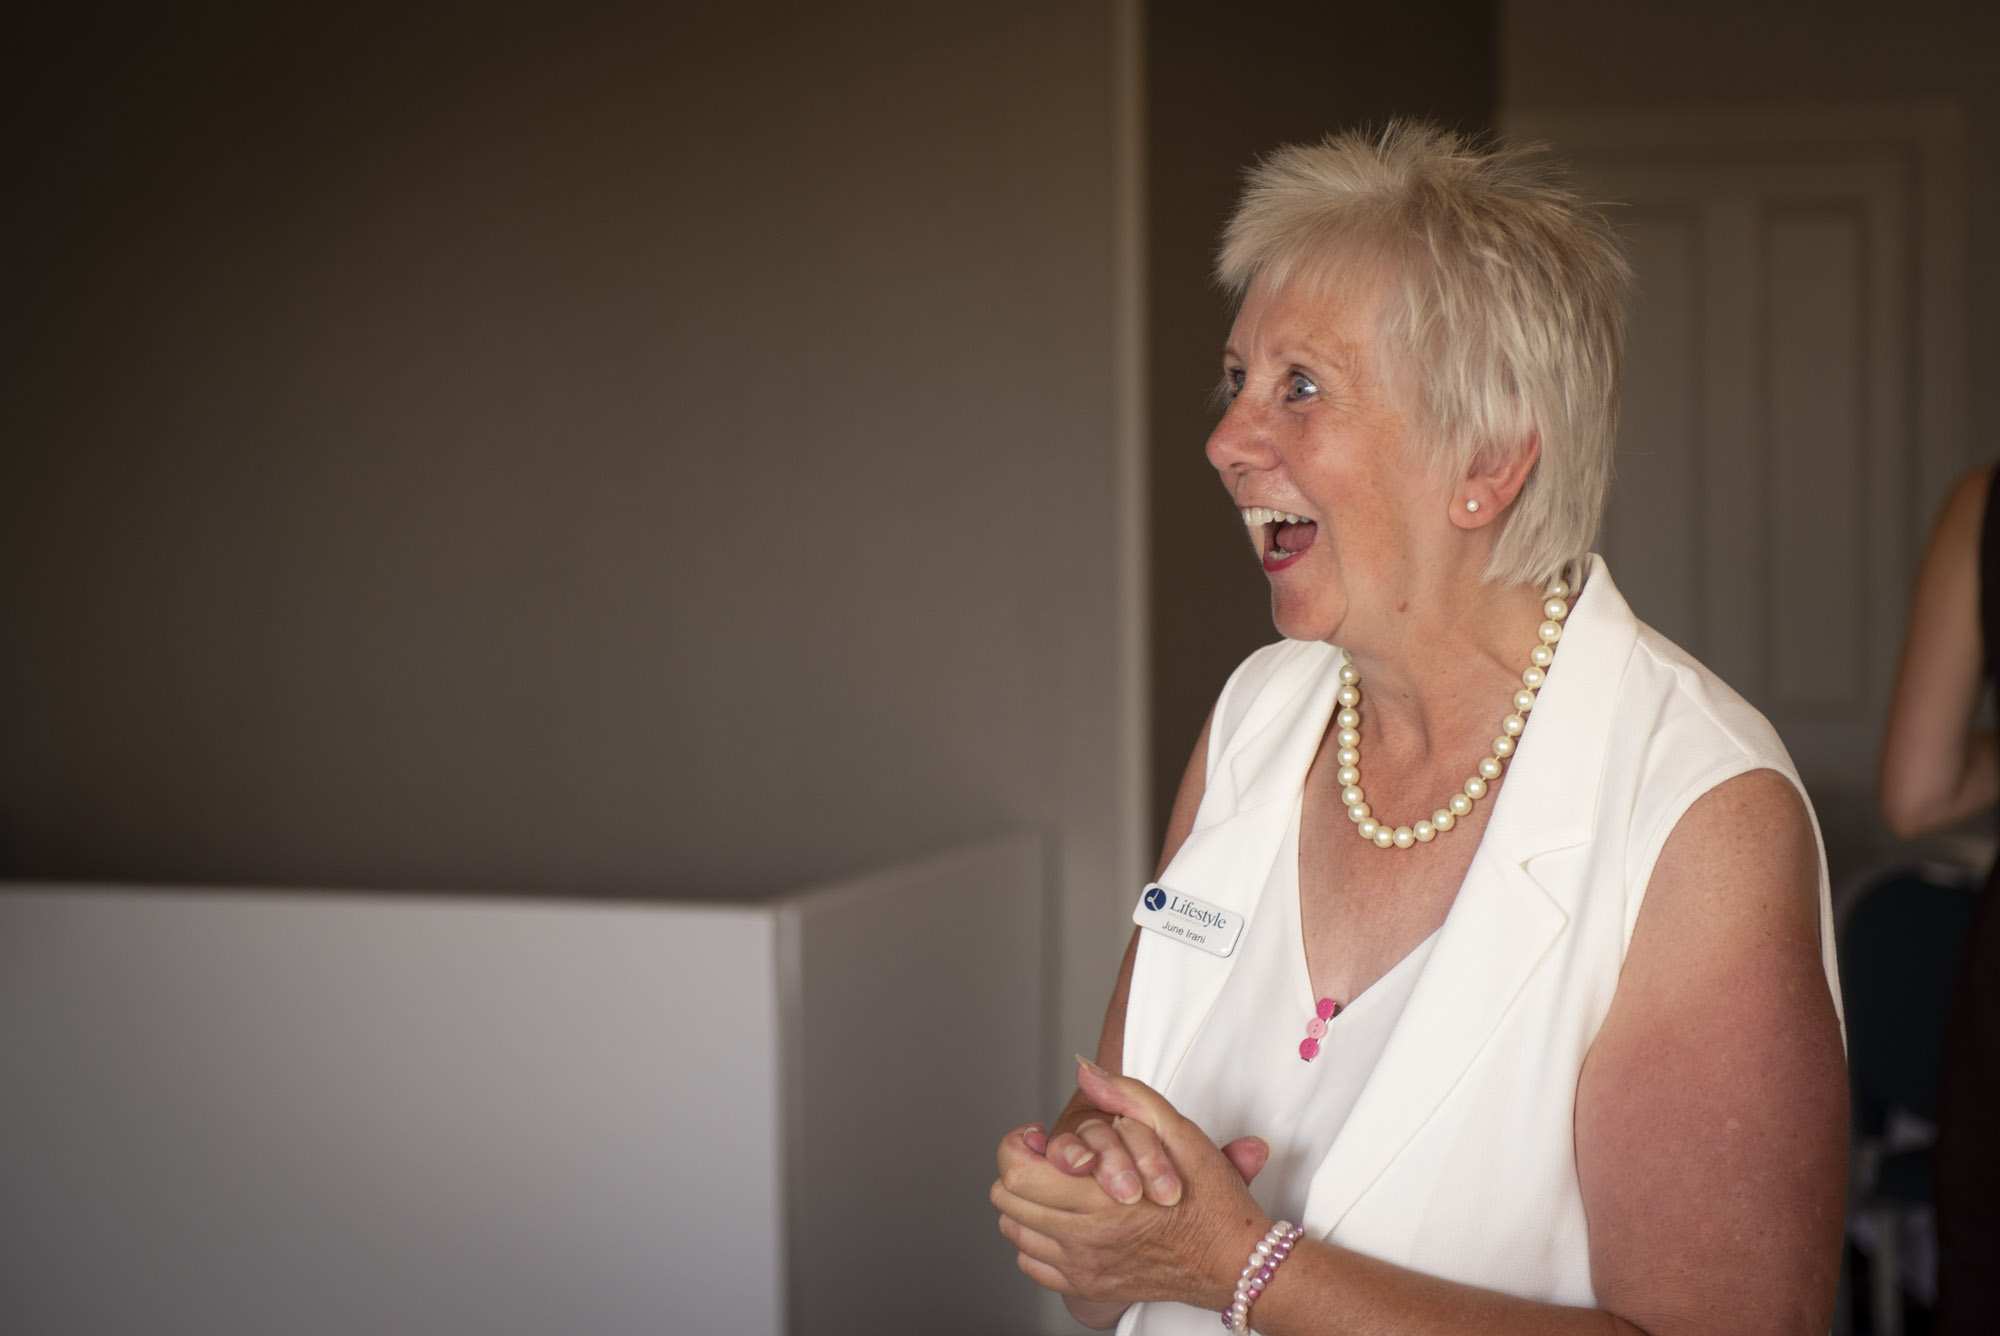 June Irani at Business Biscotti in Stratford upon Avon at the Crowne Plaza Hotel by Charlie Budd The Tall Photographer